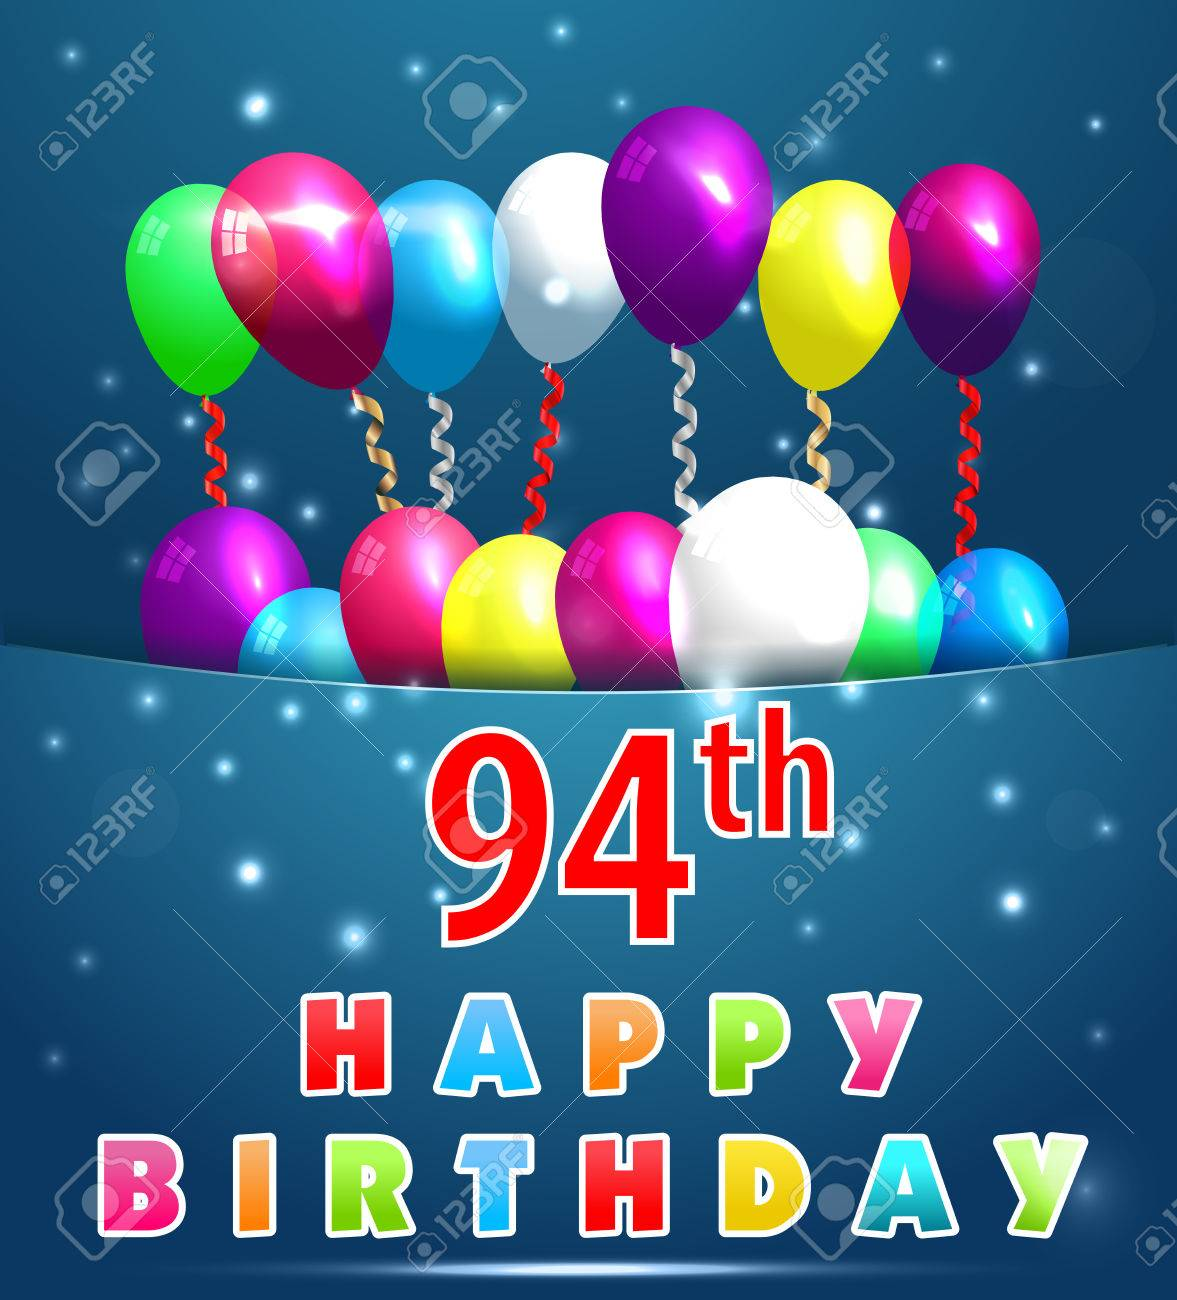 94 Year Happy Birthday Card With Balloons And Ribbons94th Stock Vector